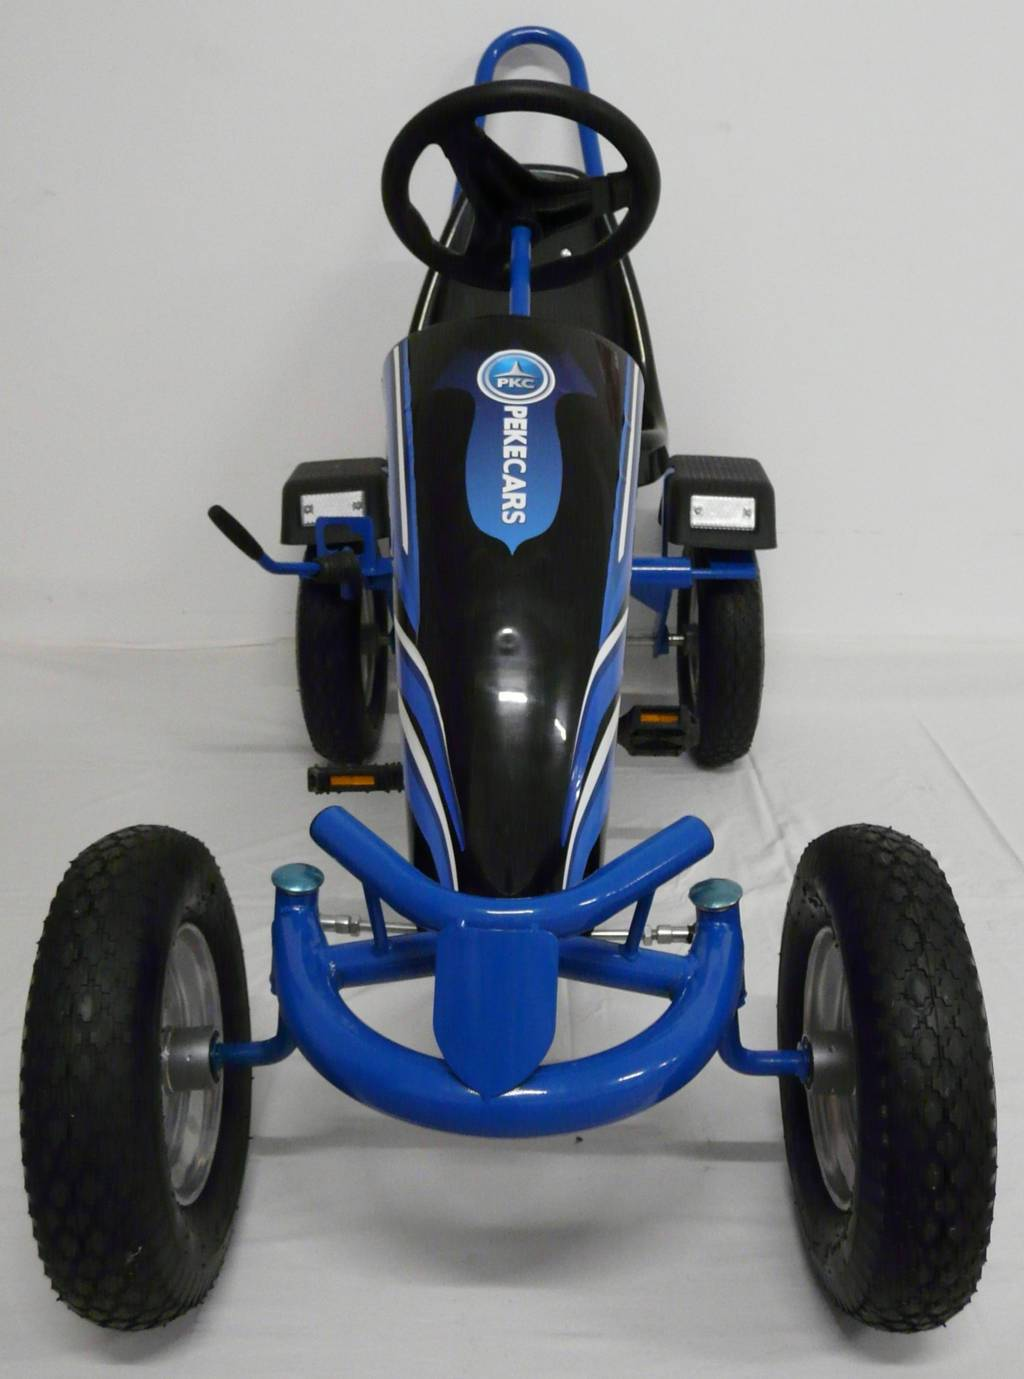 Kart a pedales sport azul Pekecars frontal